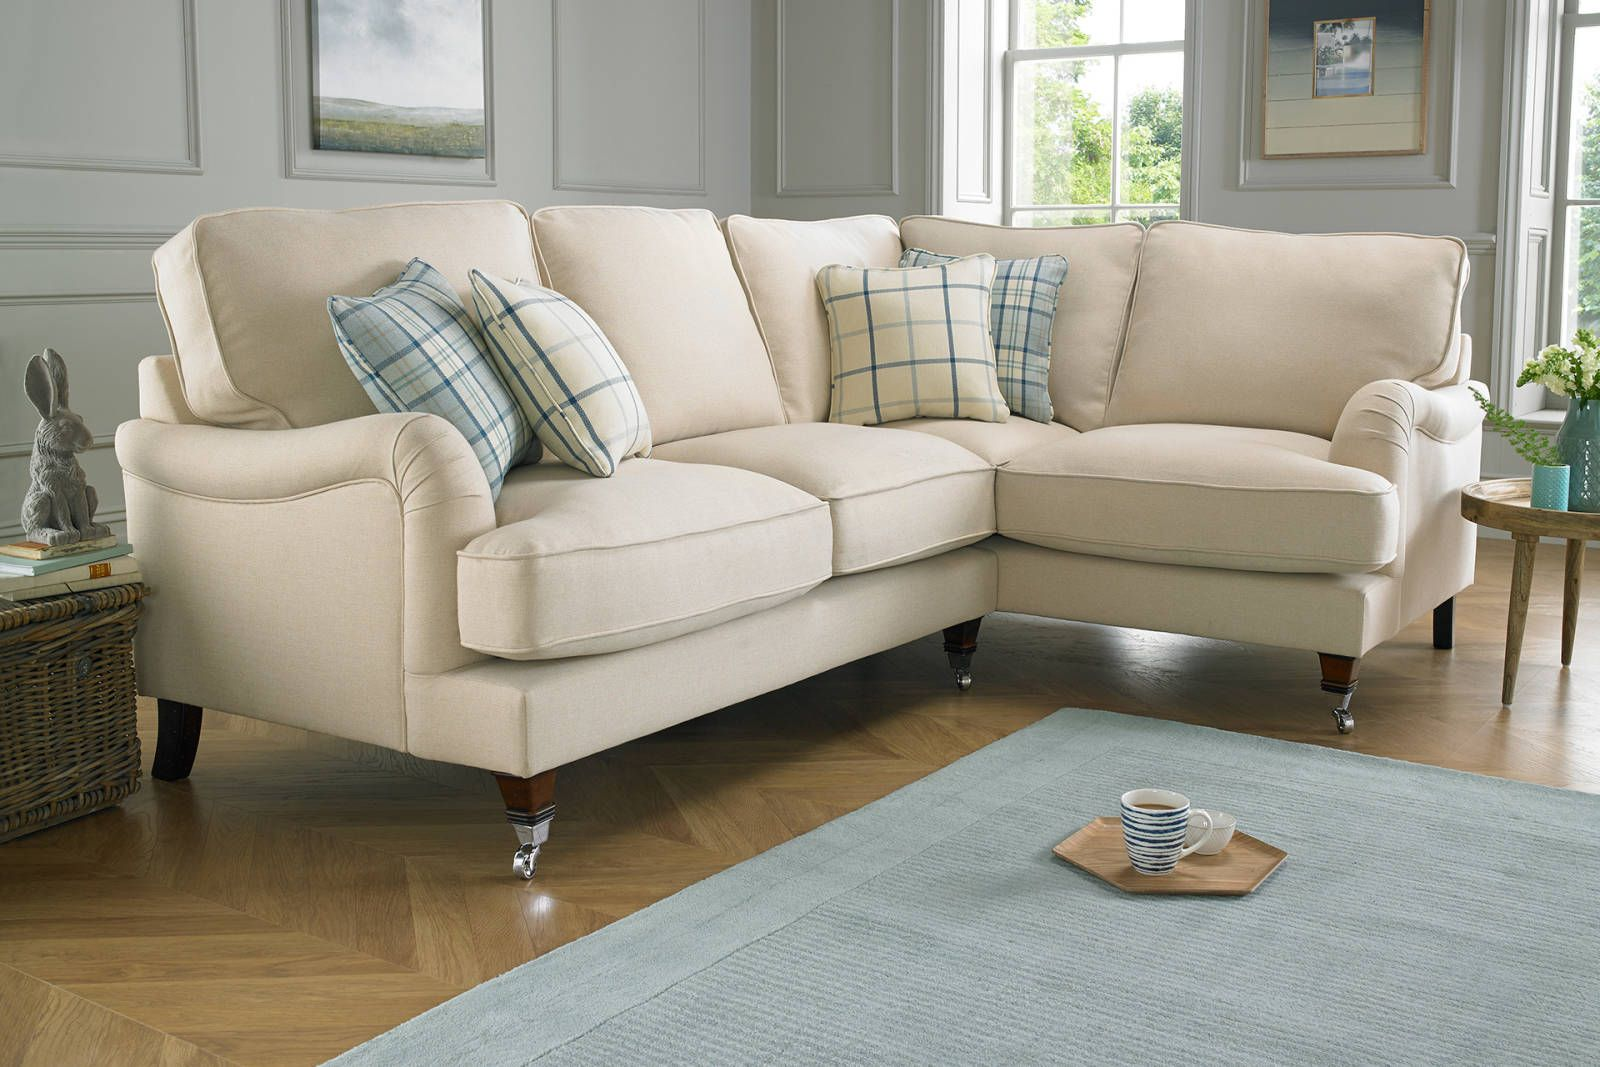 Sofology Quebec Bella Sofology New Home Sofa Home Decor Home